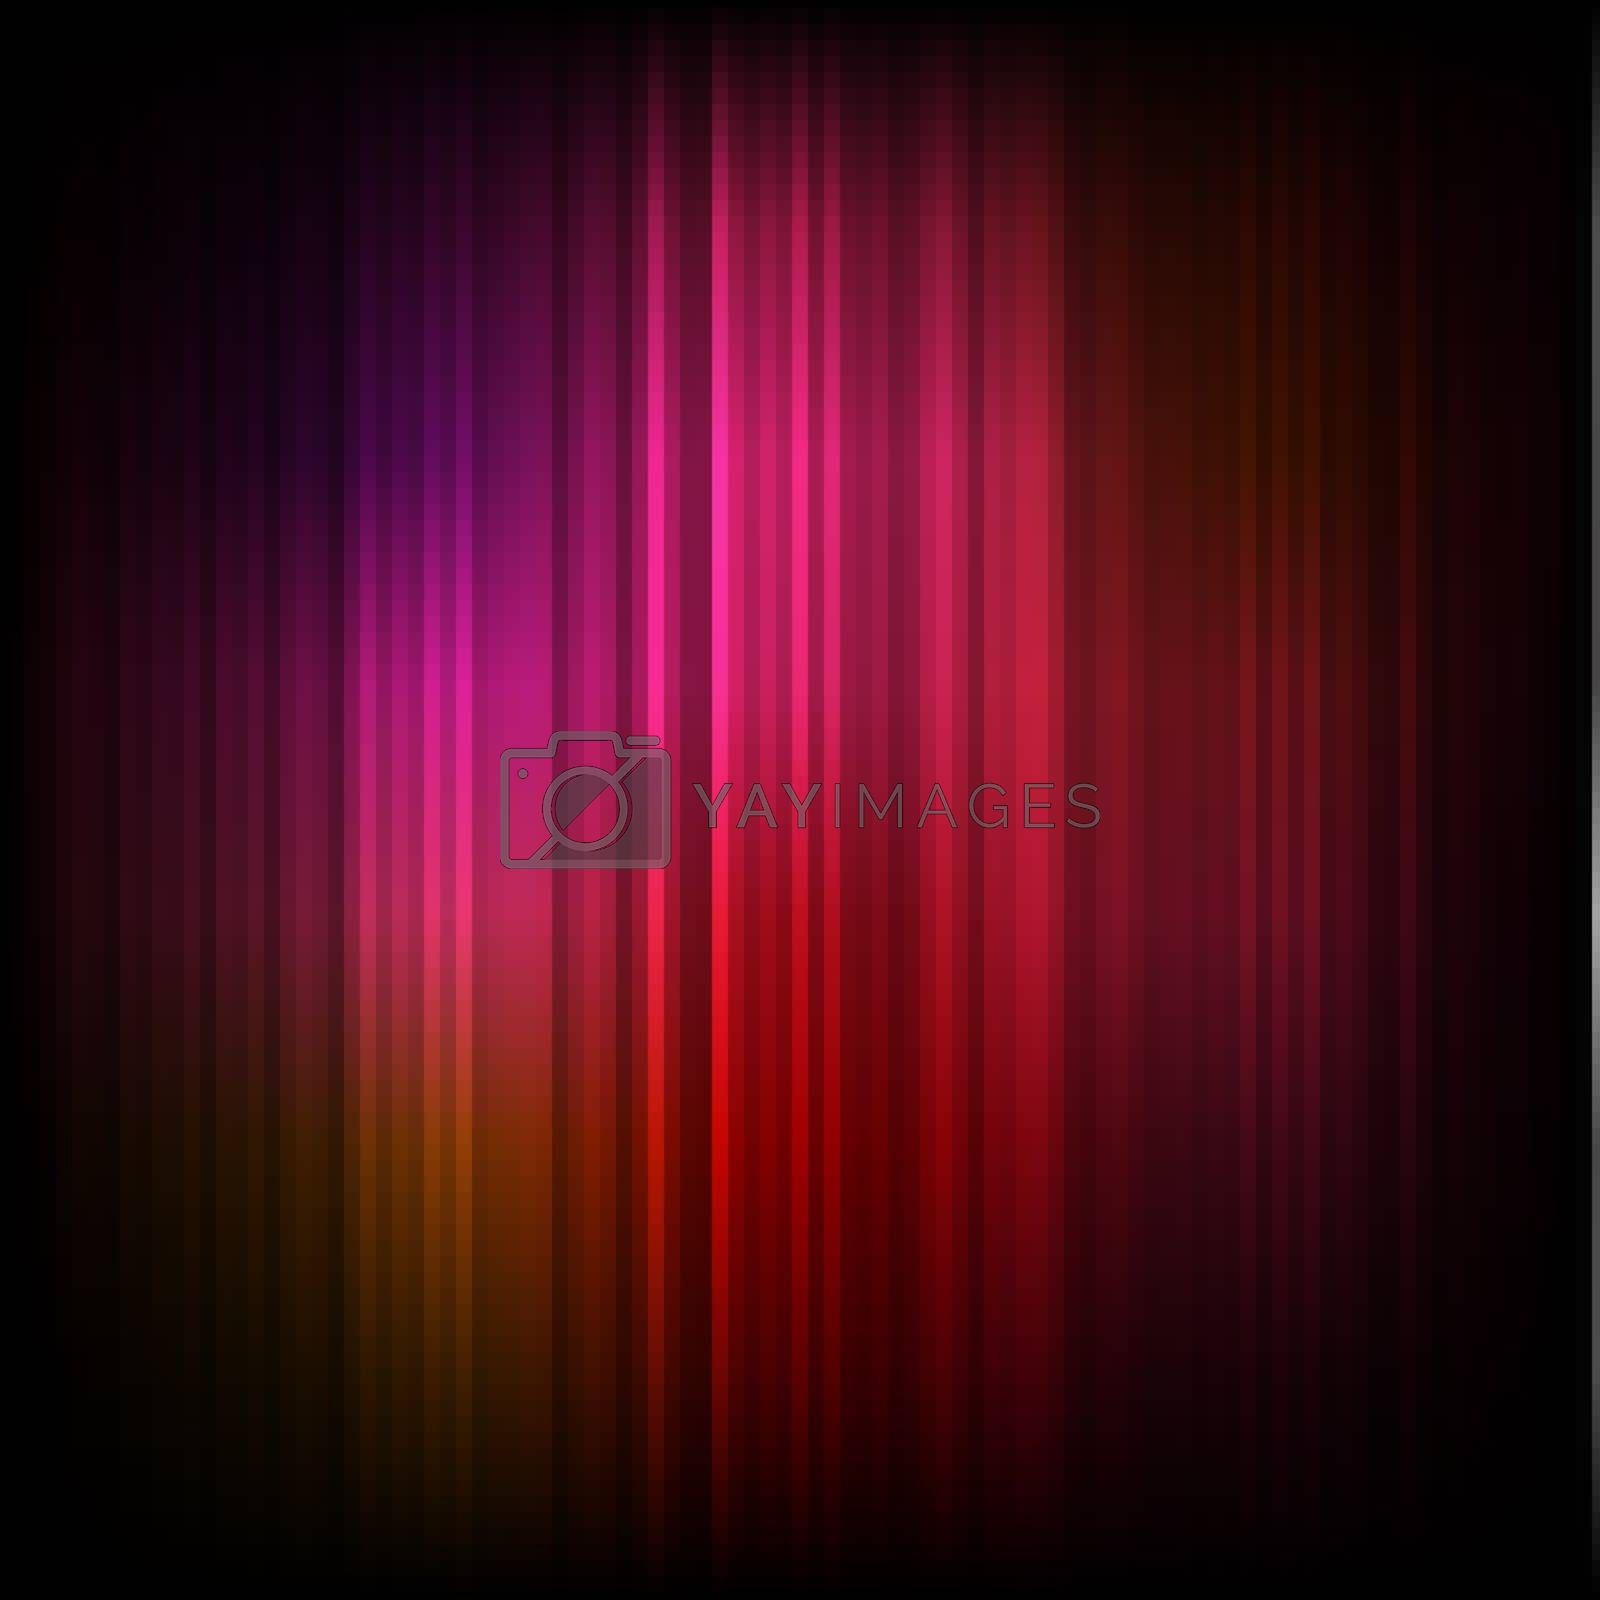 Smooth colorful abstract. EPS 8 vector file included